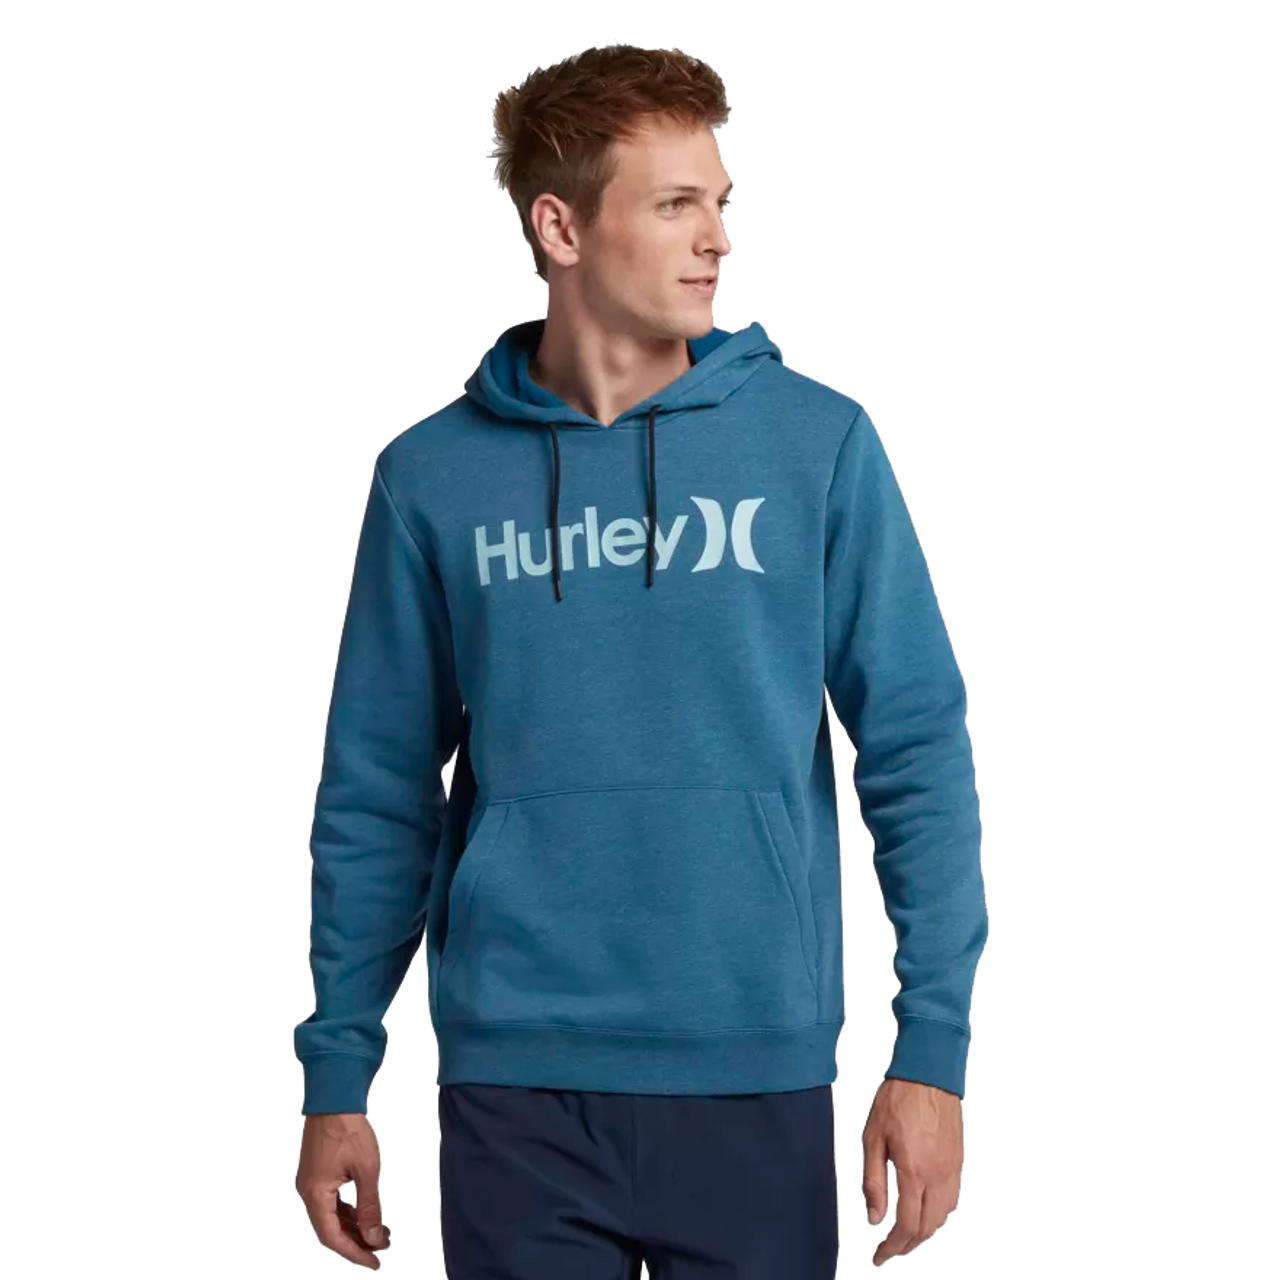 8c1ec9d2 Hurley Hoody - Surf Check One and Only - Blue Force Heather - Surf ...